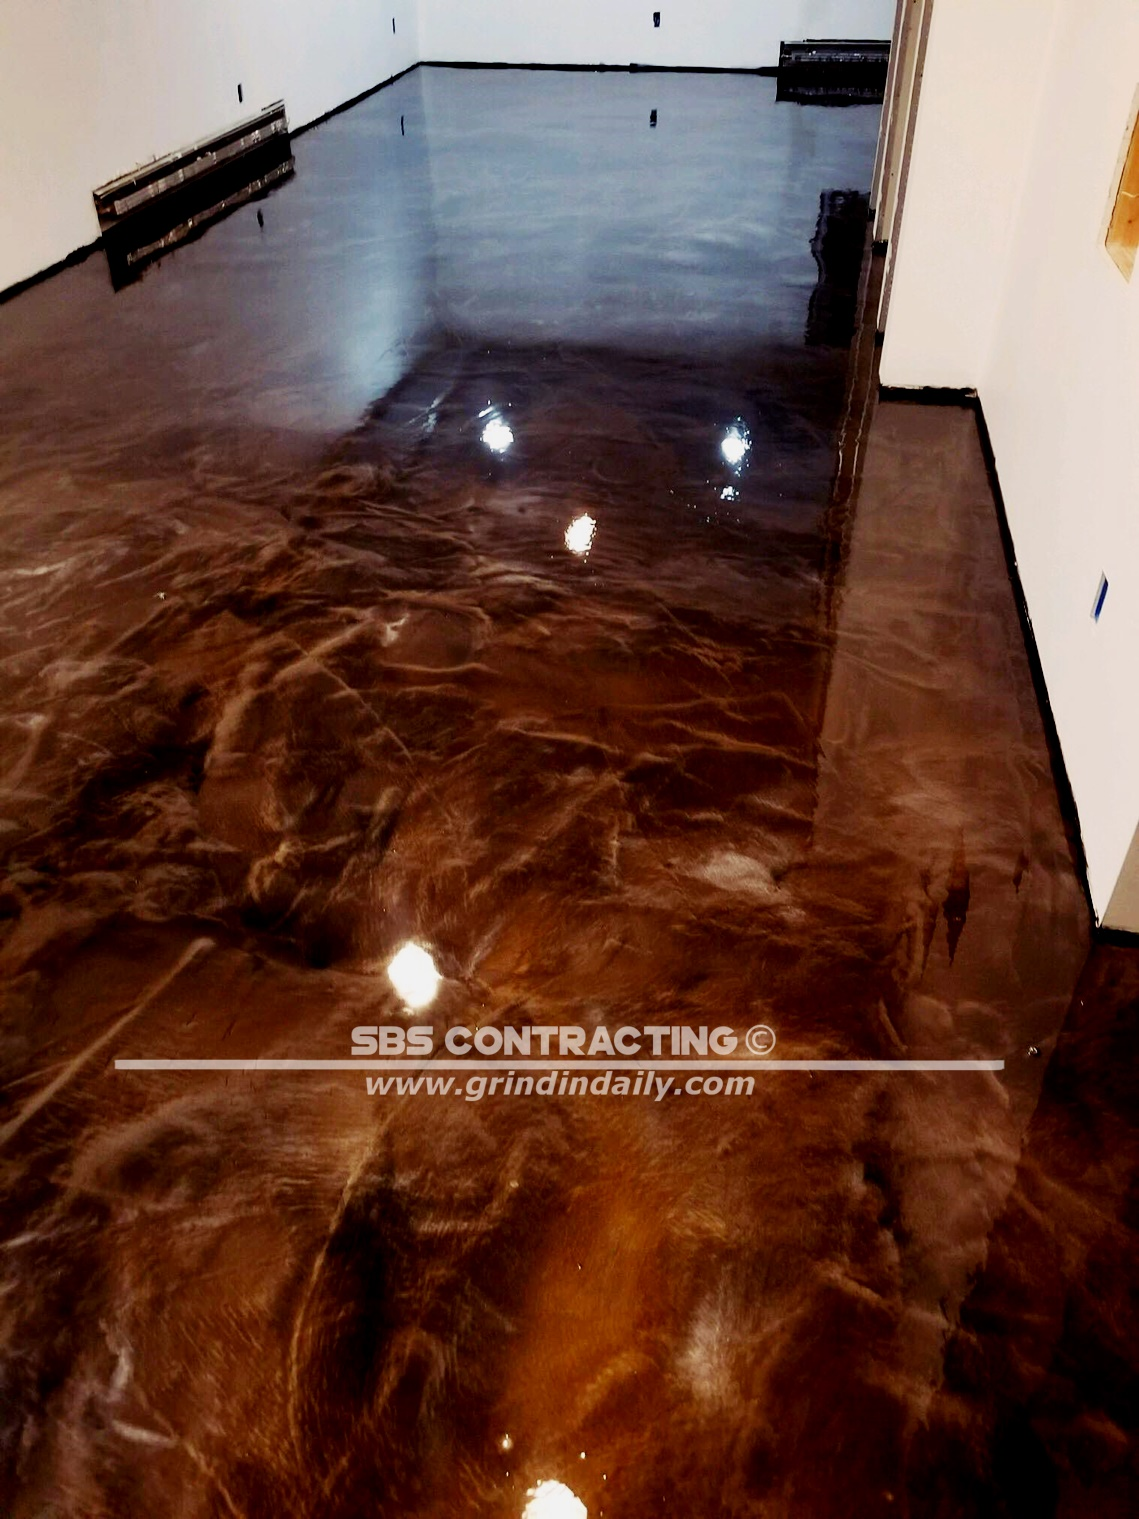 SBS-Contracting-Concrete-Stain-Project-Metallic-02-2018-01-01